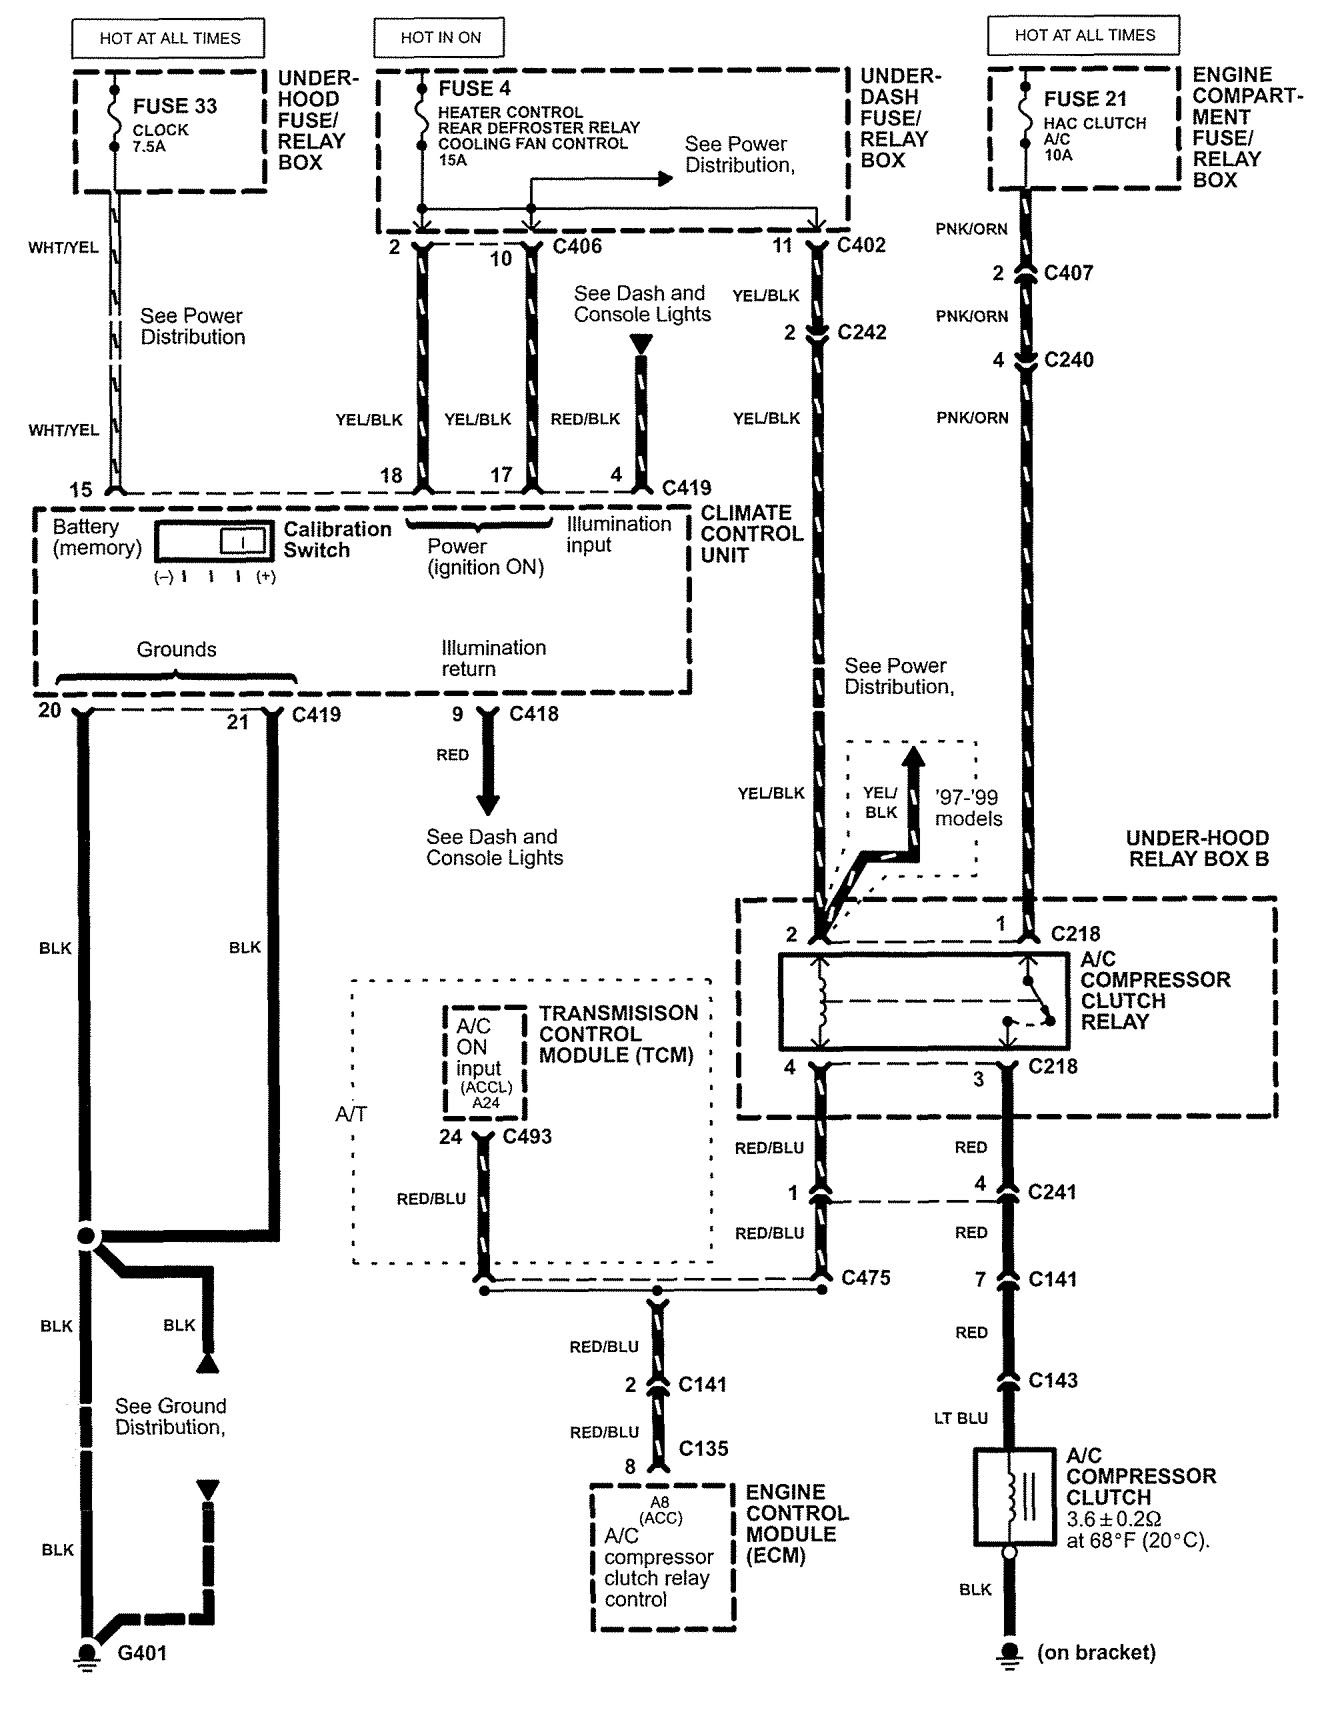 Tl 2005 Fuse Diagram. Diagram. Auto Wiring Diagram